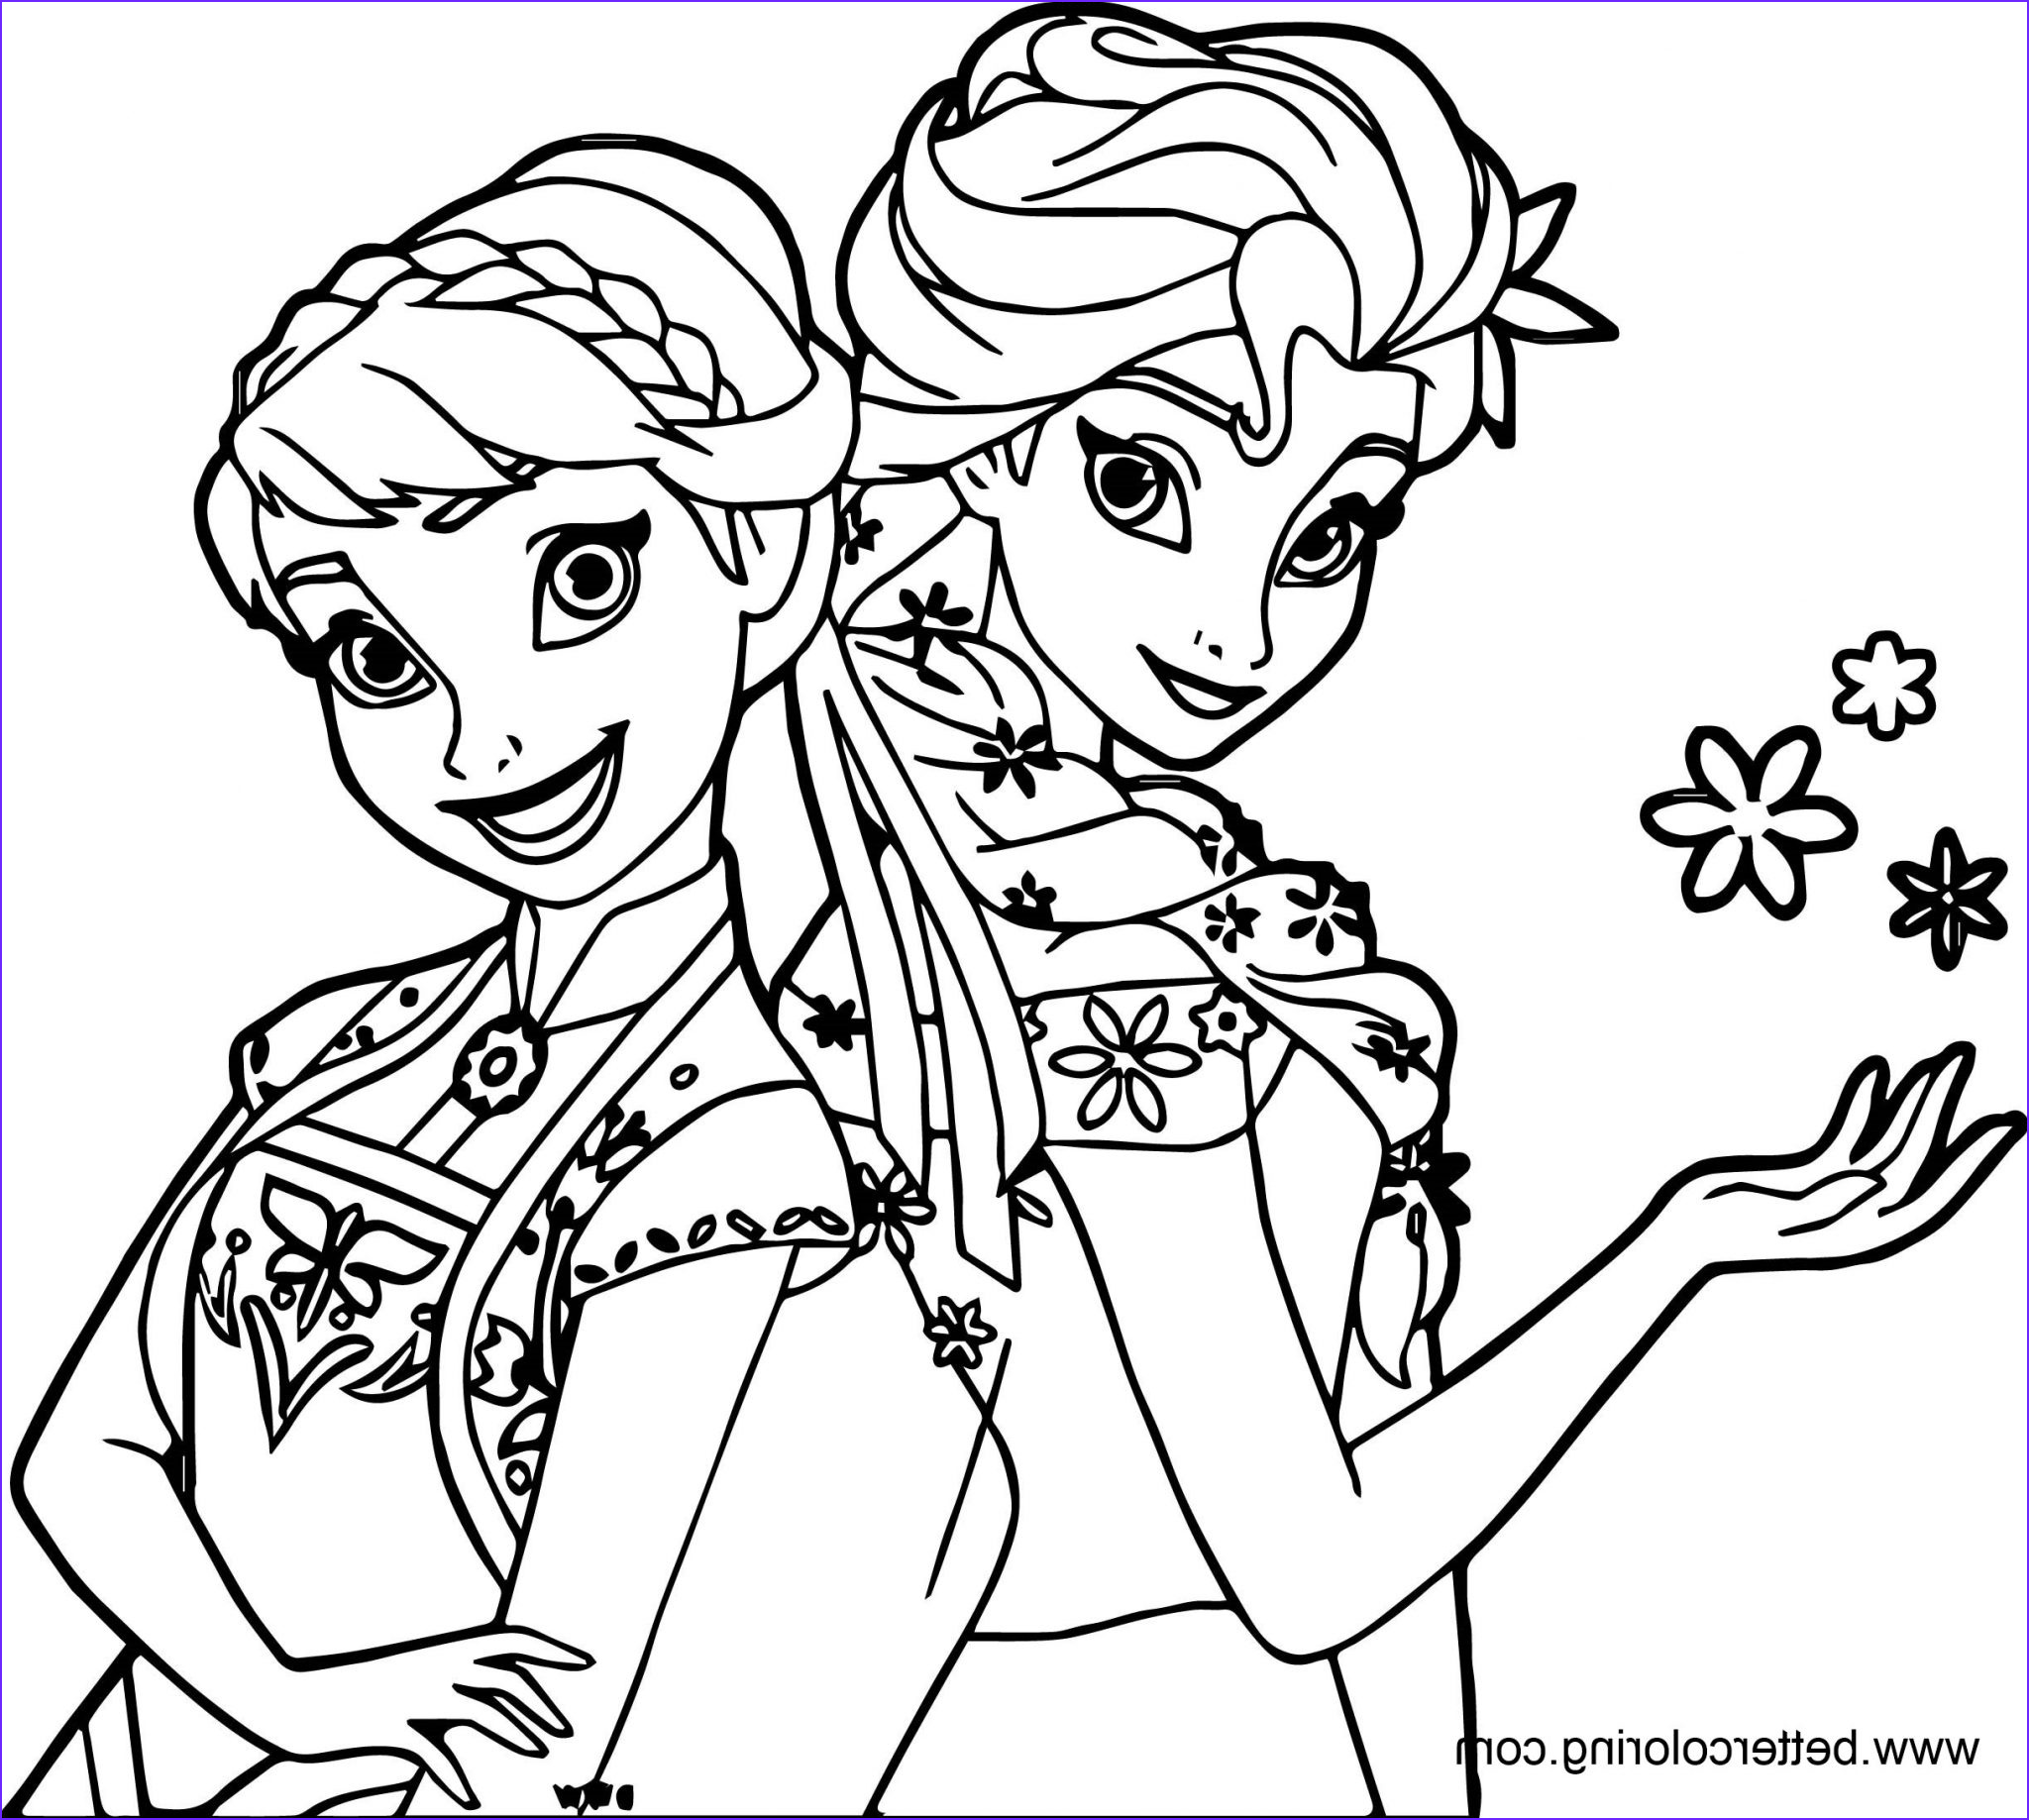 Elsa and Anna Coloring Pages Beautiful Photography Frozen Elsa and Anna Coloring Pages Free Printable